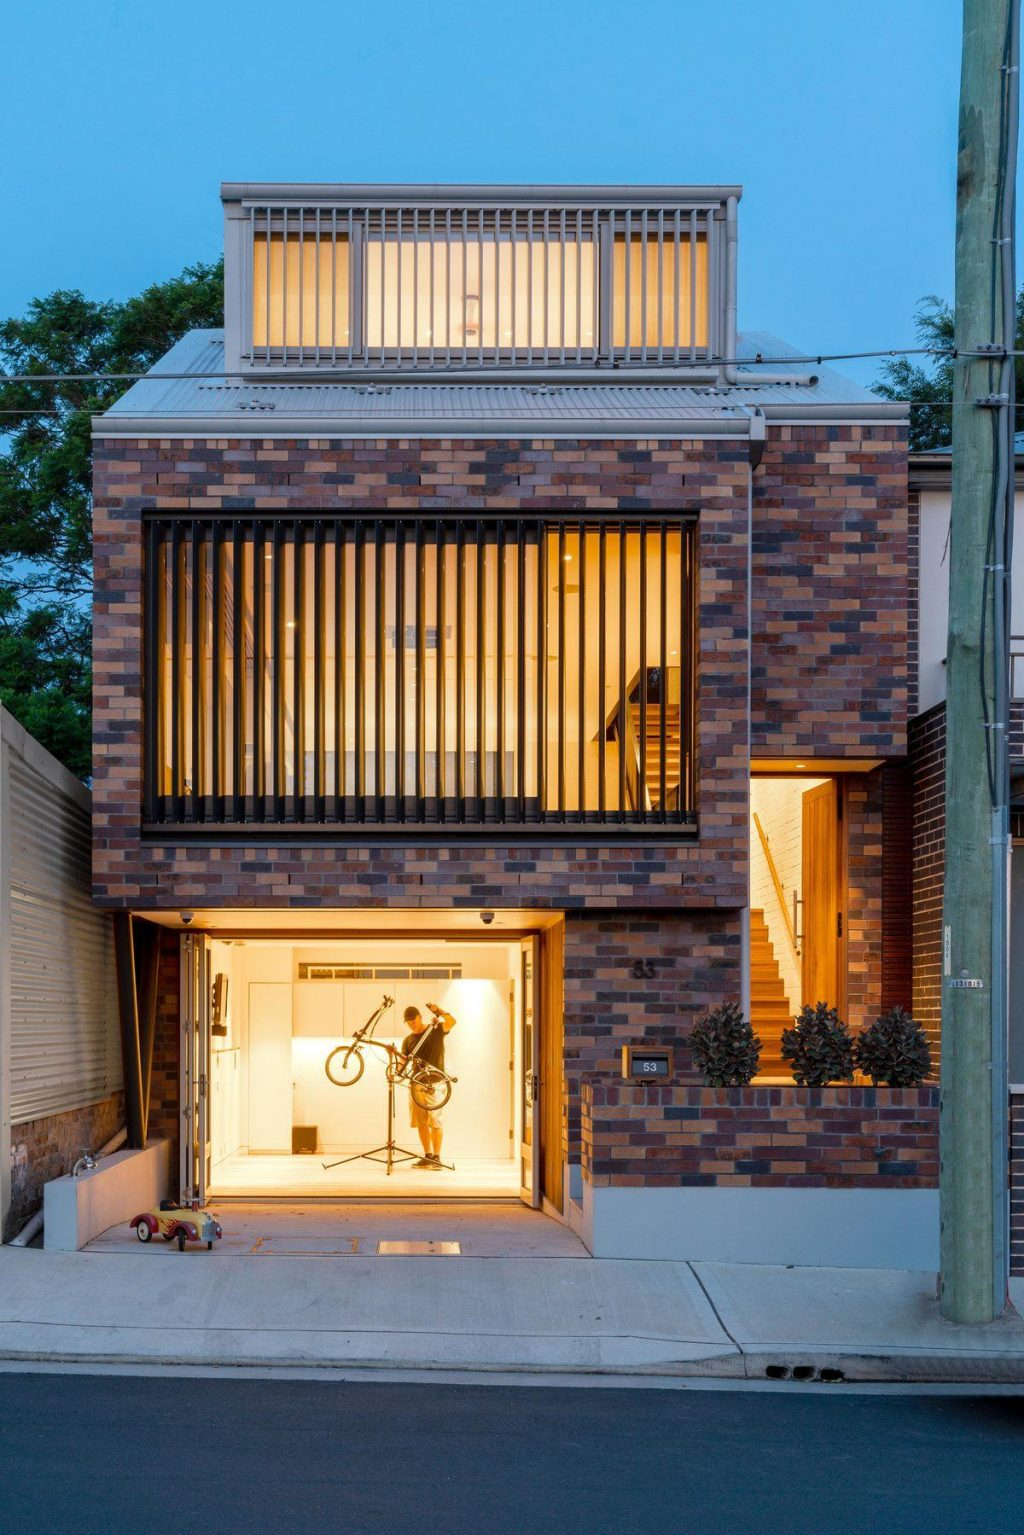 A house with a creative brick pattern by Kreis Grennan Architecture